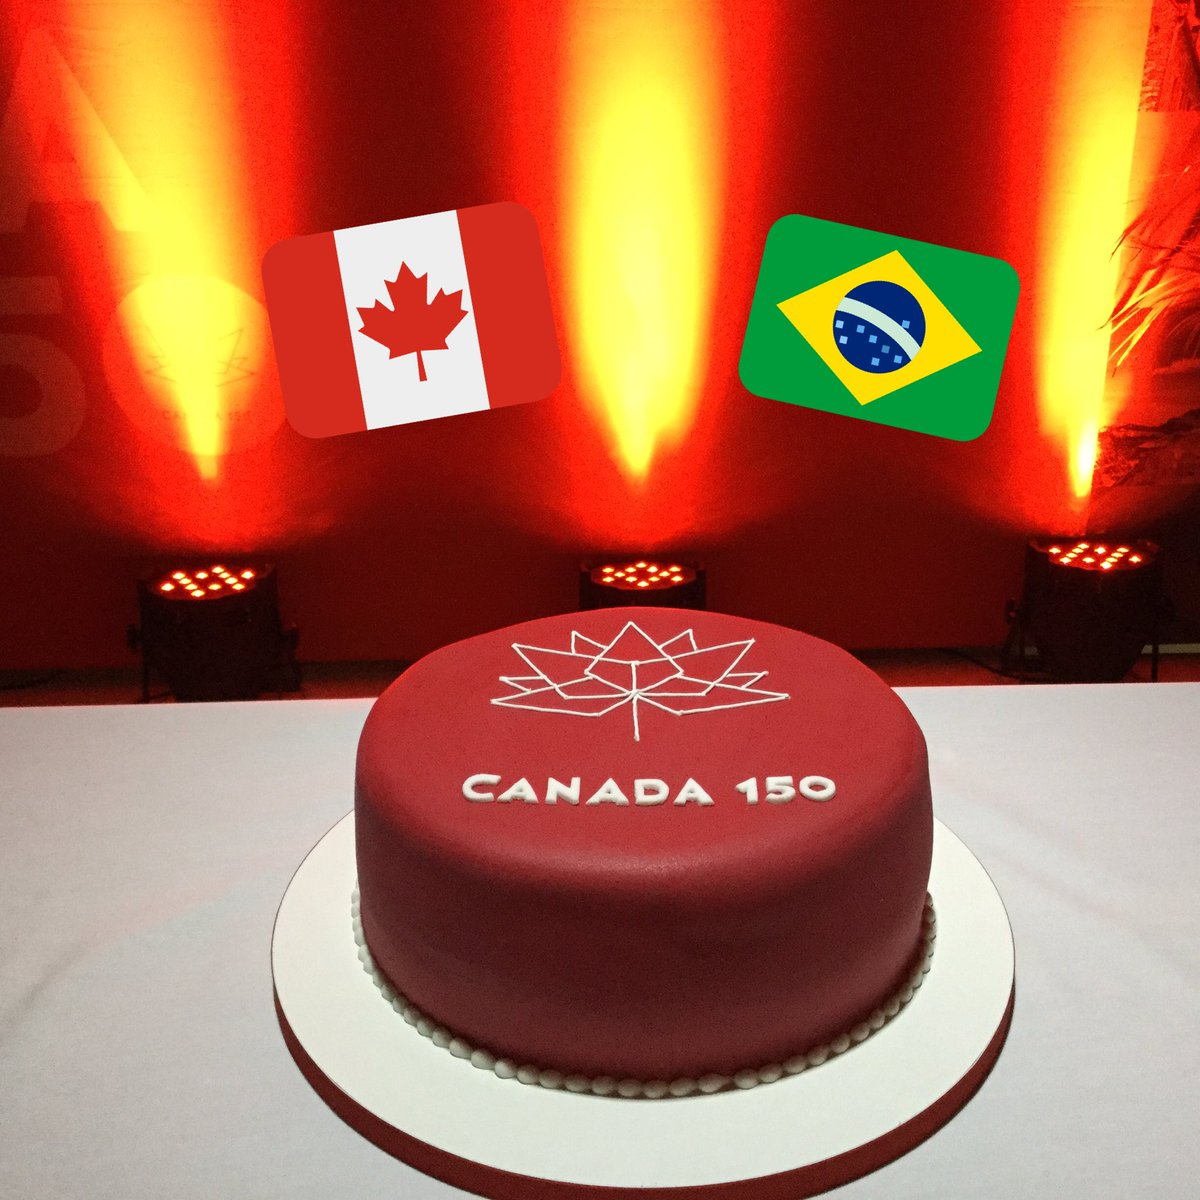 Tremendous Canada In Brazil On Twitter Nice Canada150 Birthday Cake In Funny Birthday Cards Online Chimdamsfinfo